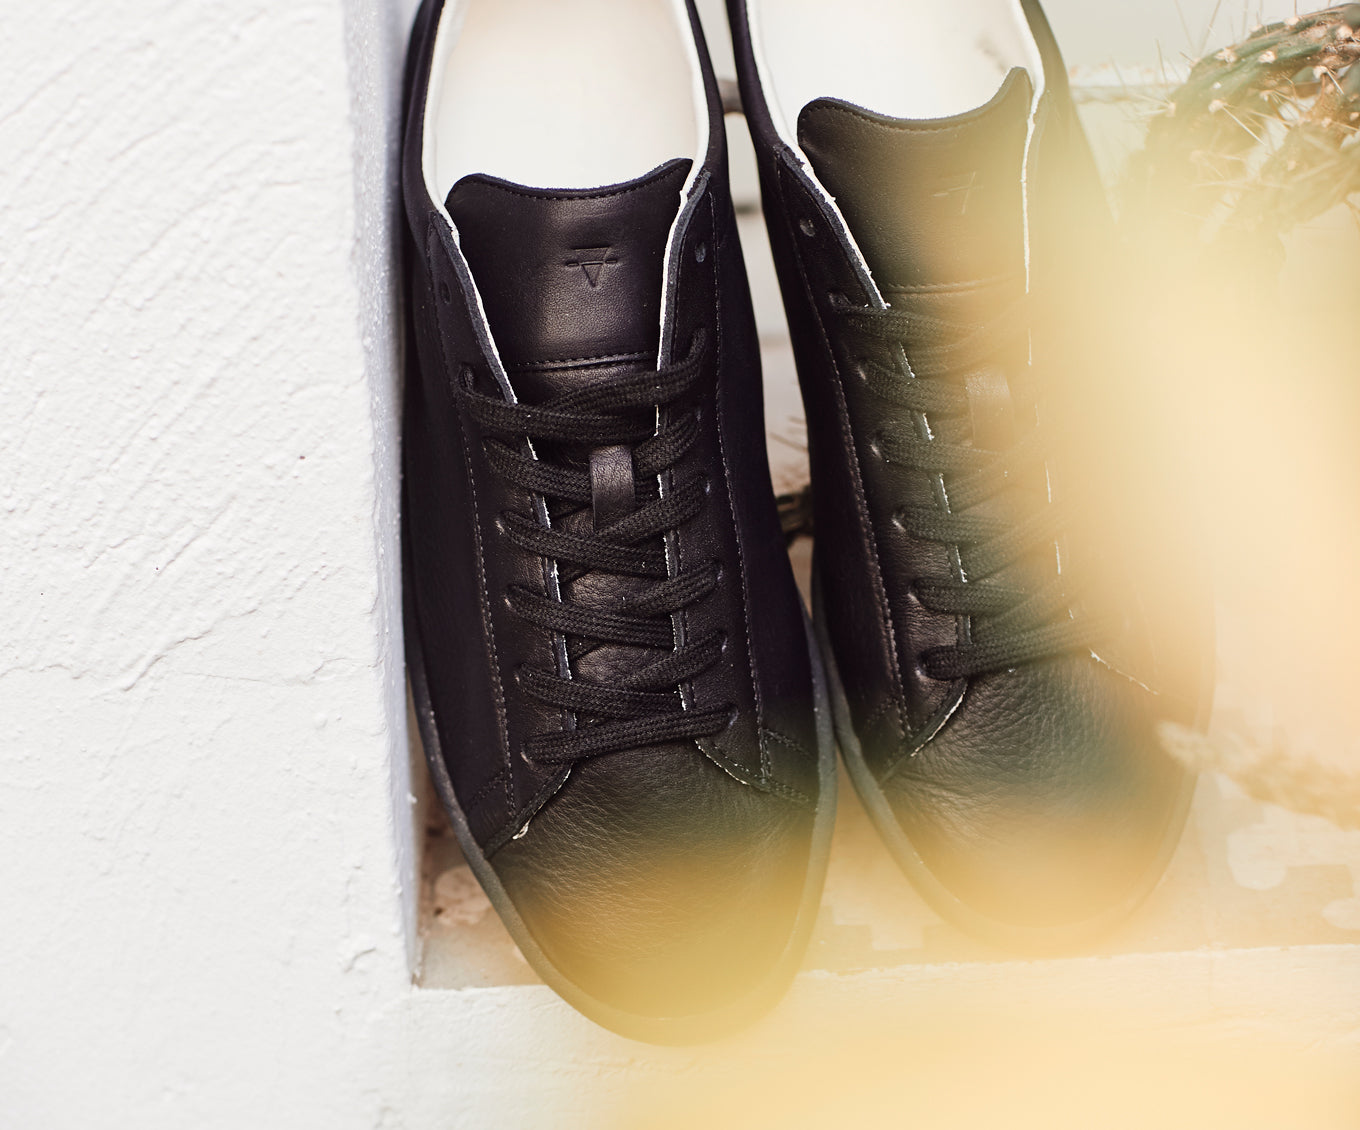 1970 compostable sustainable sneakers natural gum sole in black WAES plastic-free sneakers shoot 2020